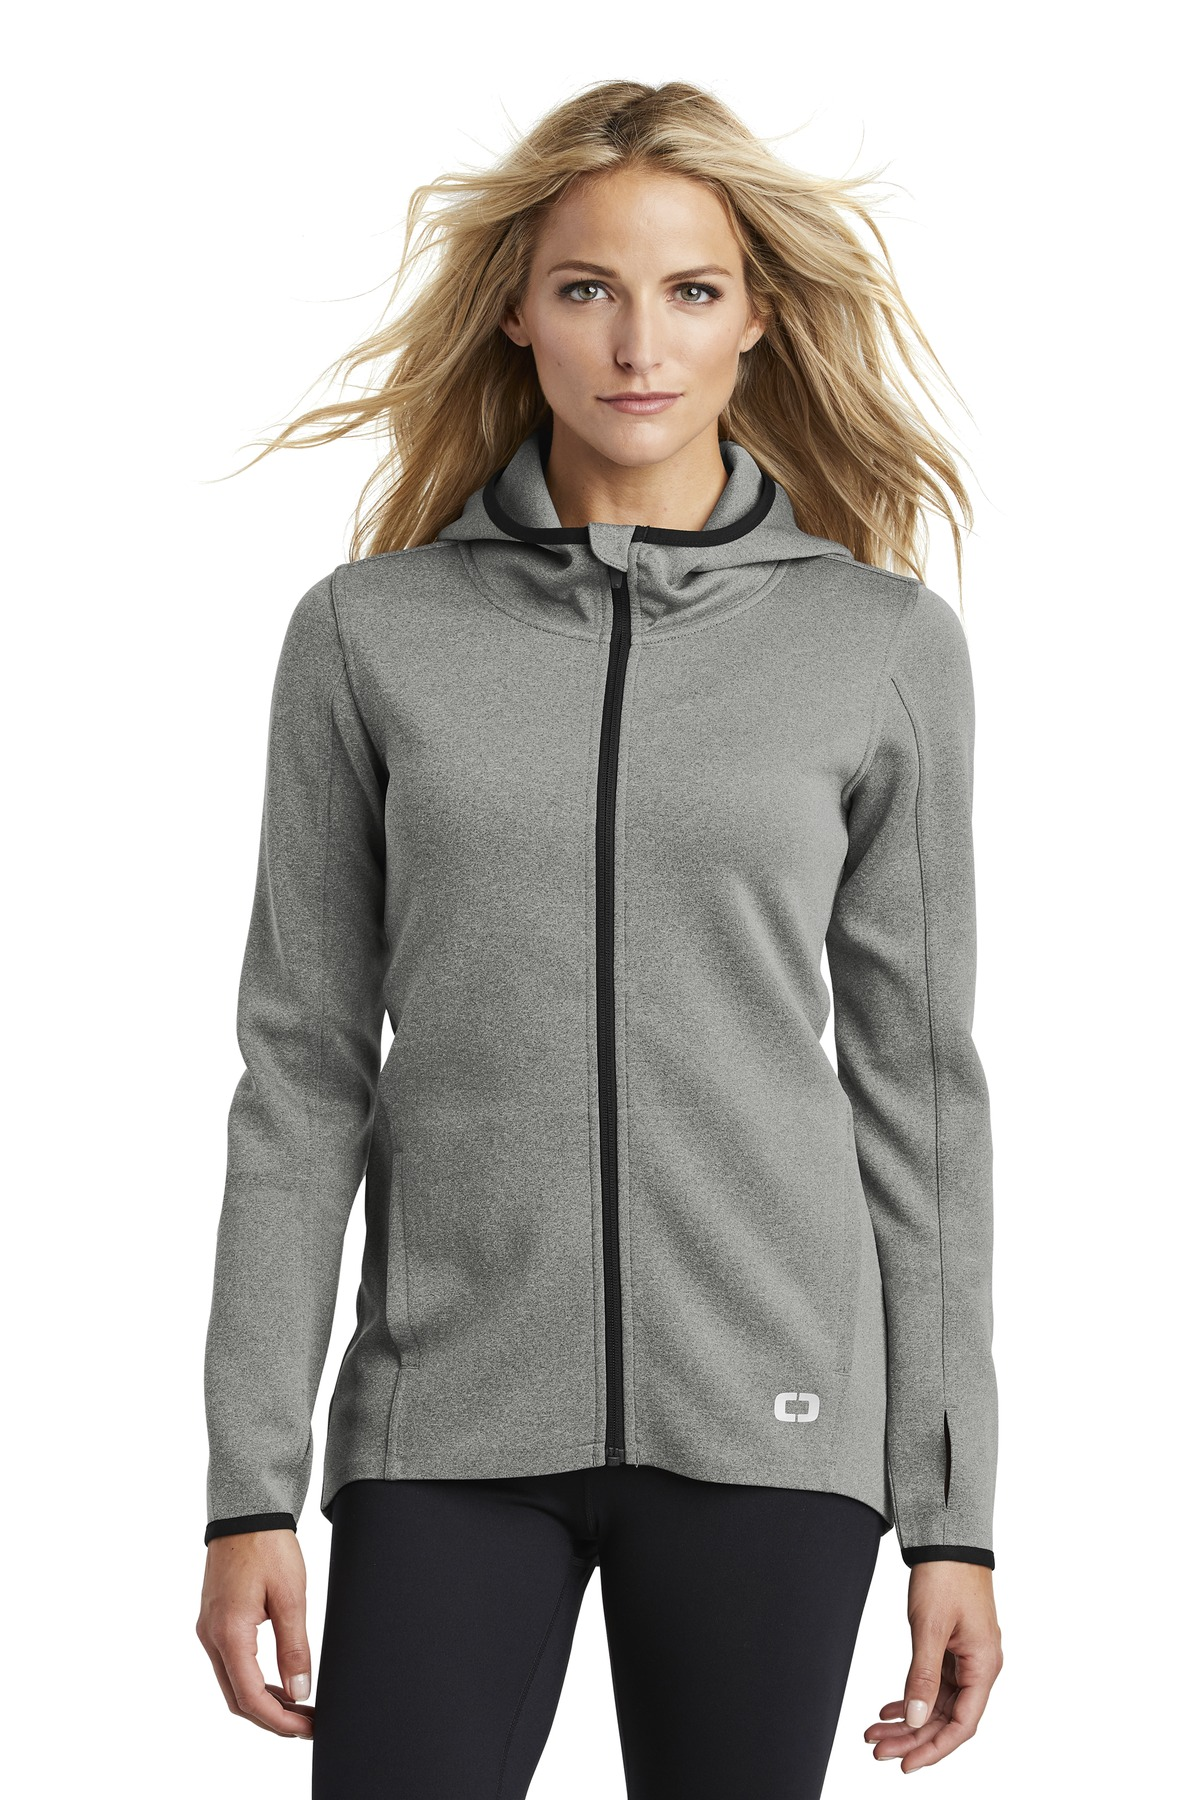 OGIO  ®  ENDURANCE Ladies Stealth Full-Zip Jacket. LOE728 - Heather Grey